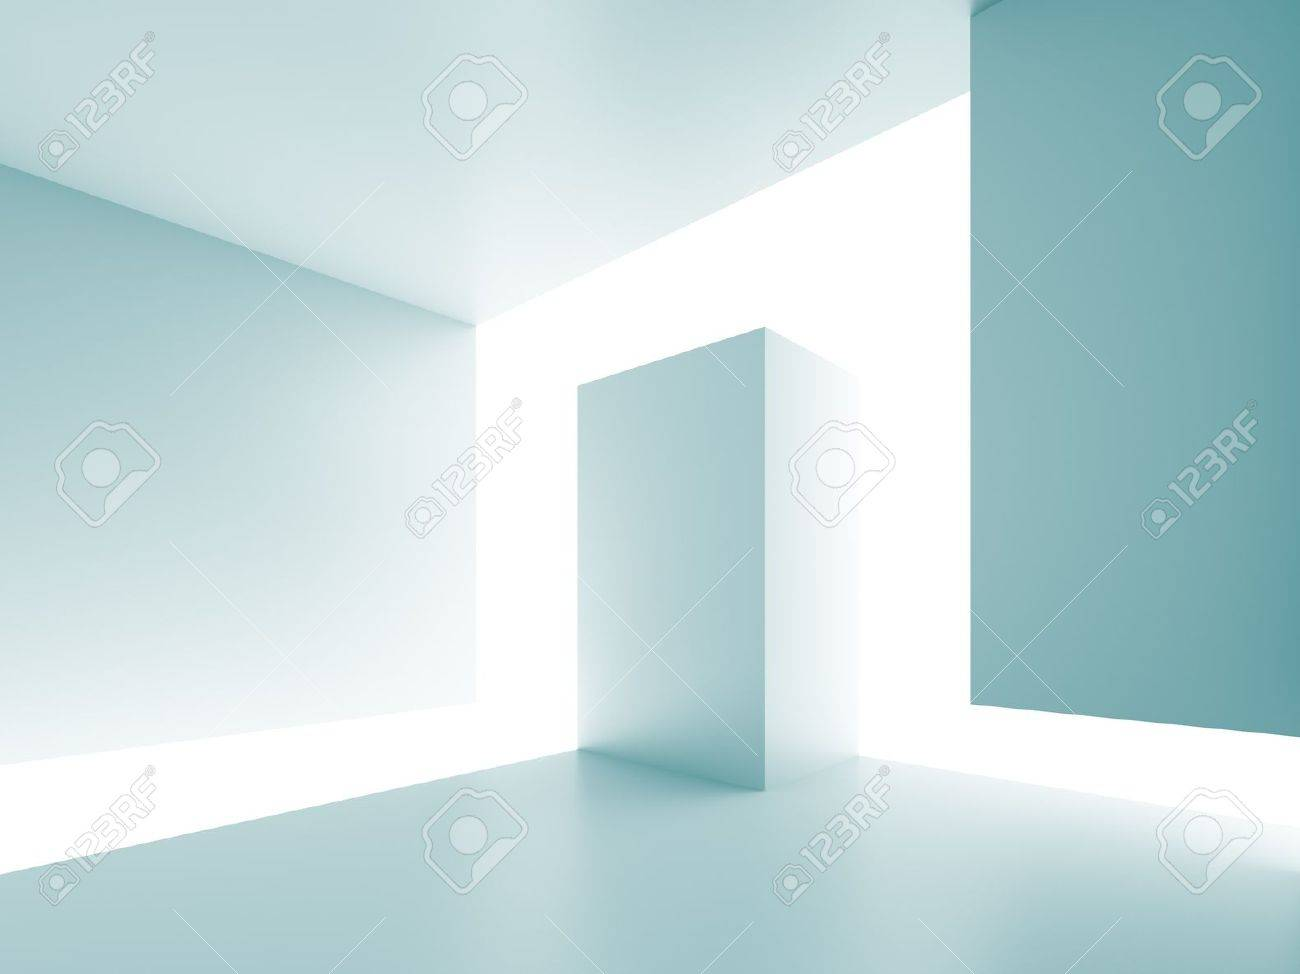 Blue Abstract Architecture Background Stock Photo - 8897981